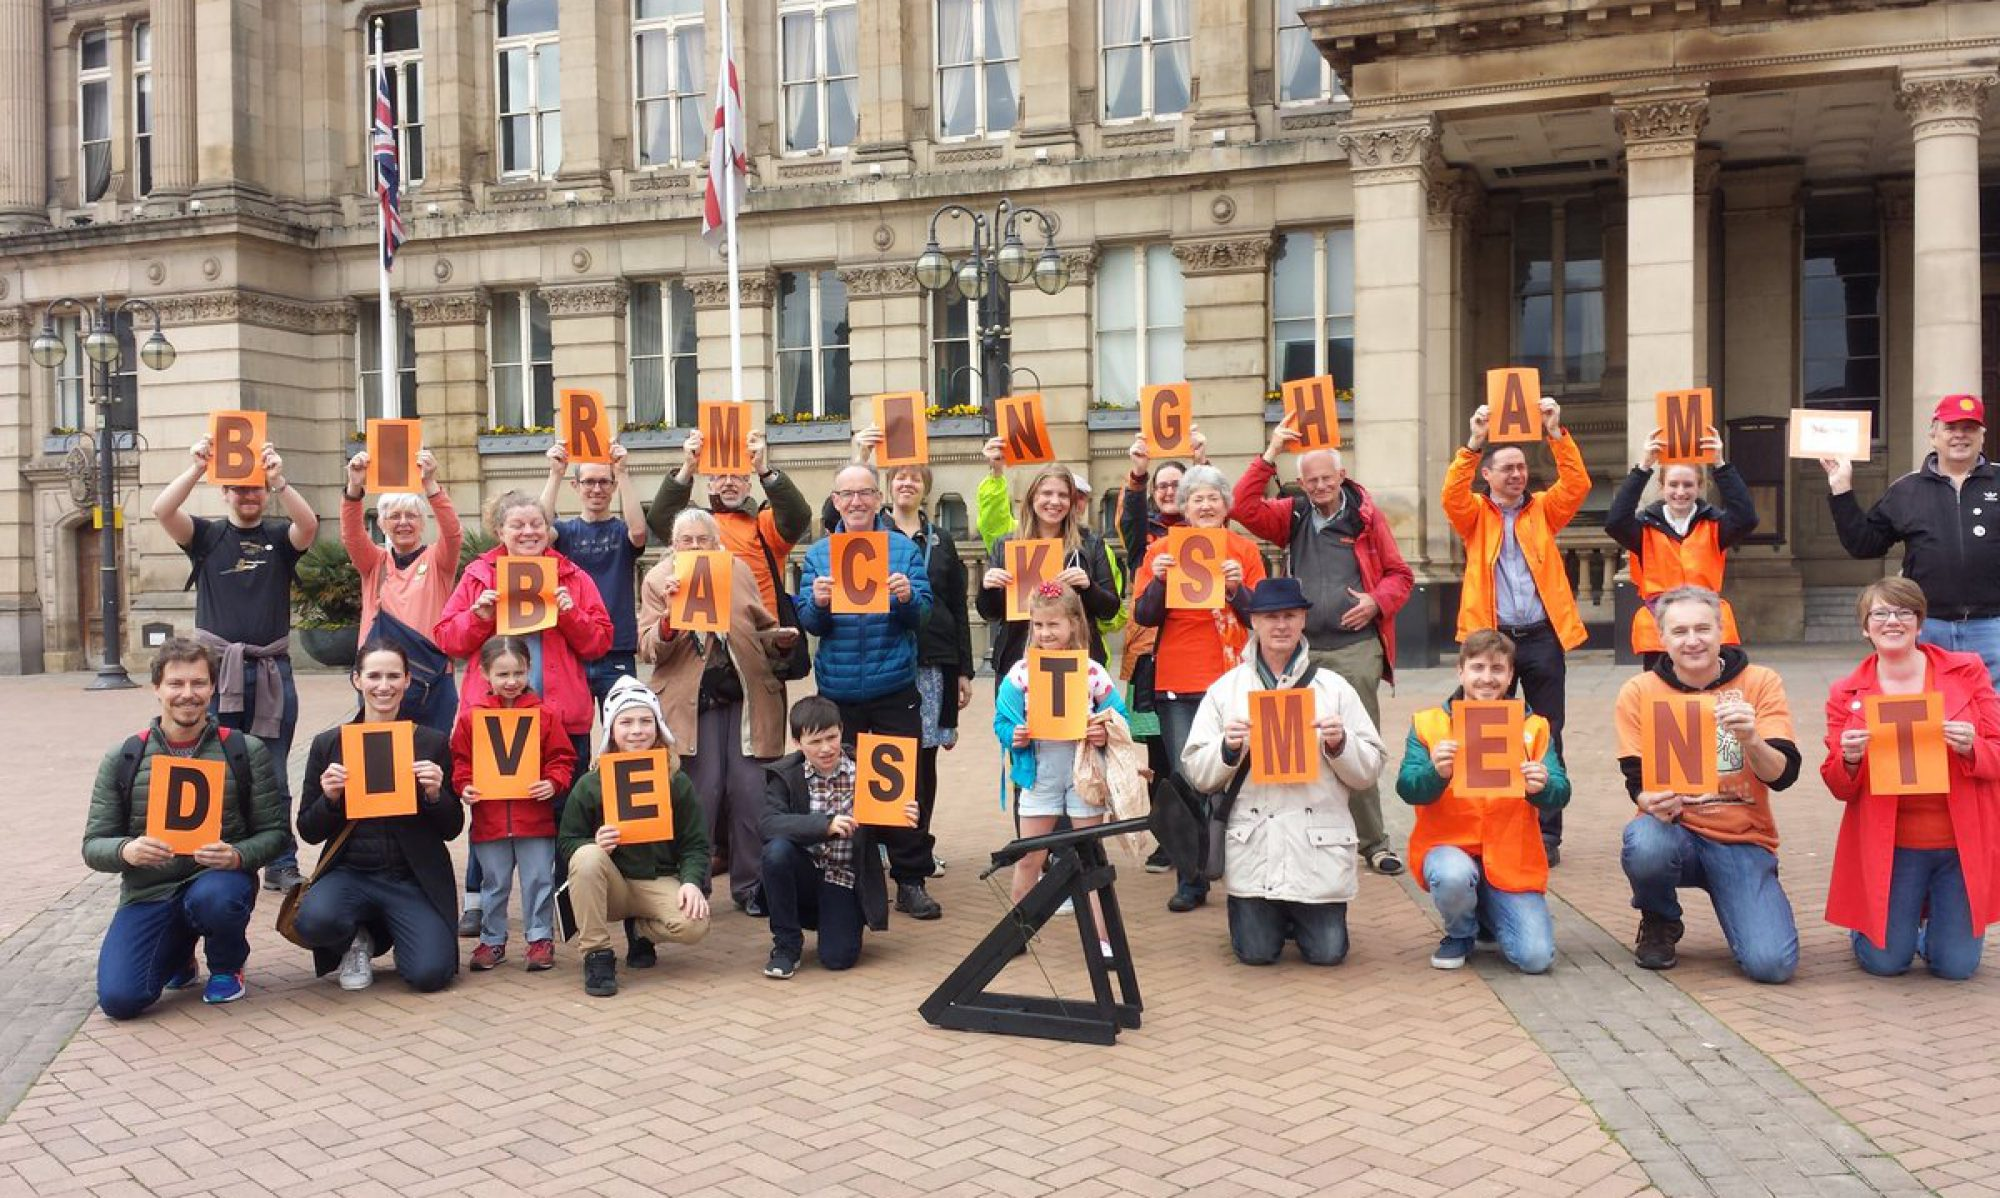 Divest West Midlands